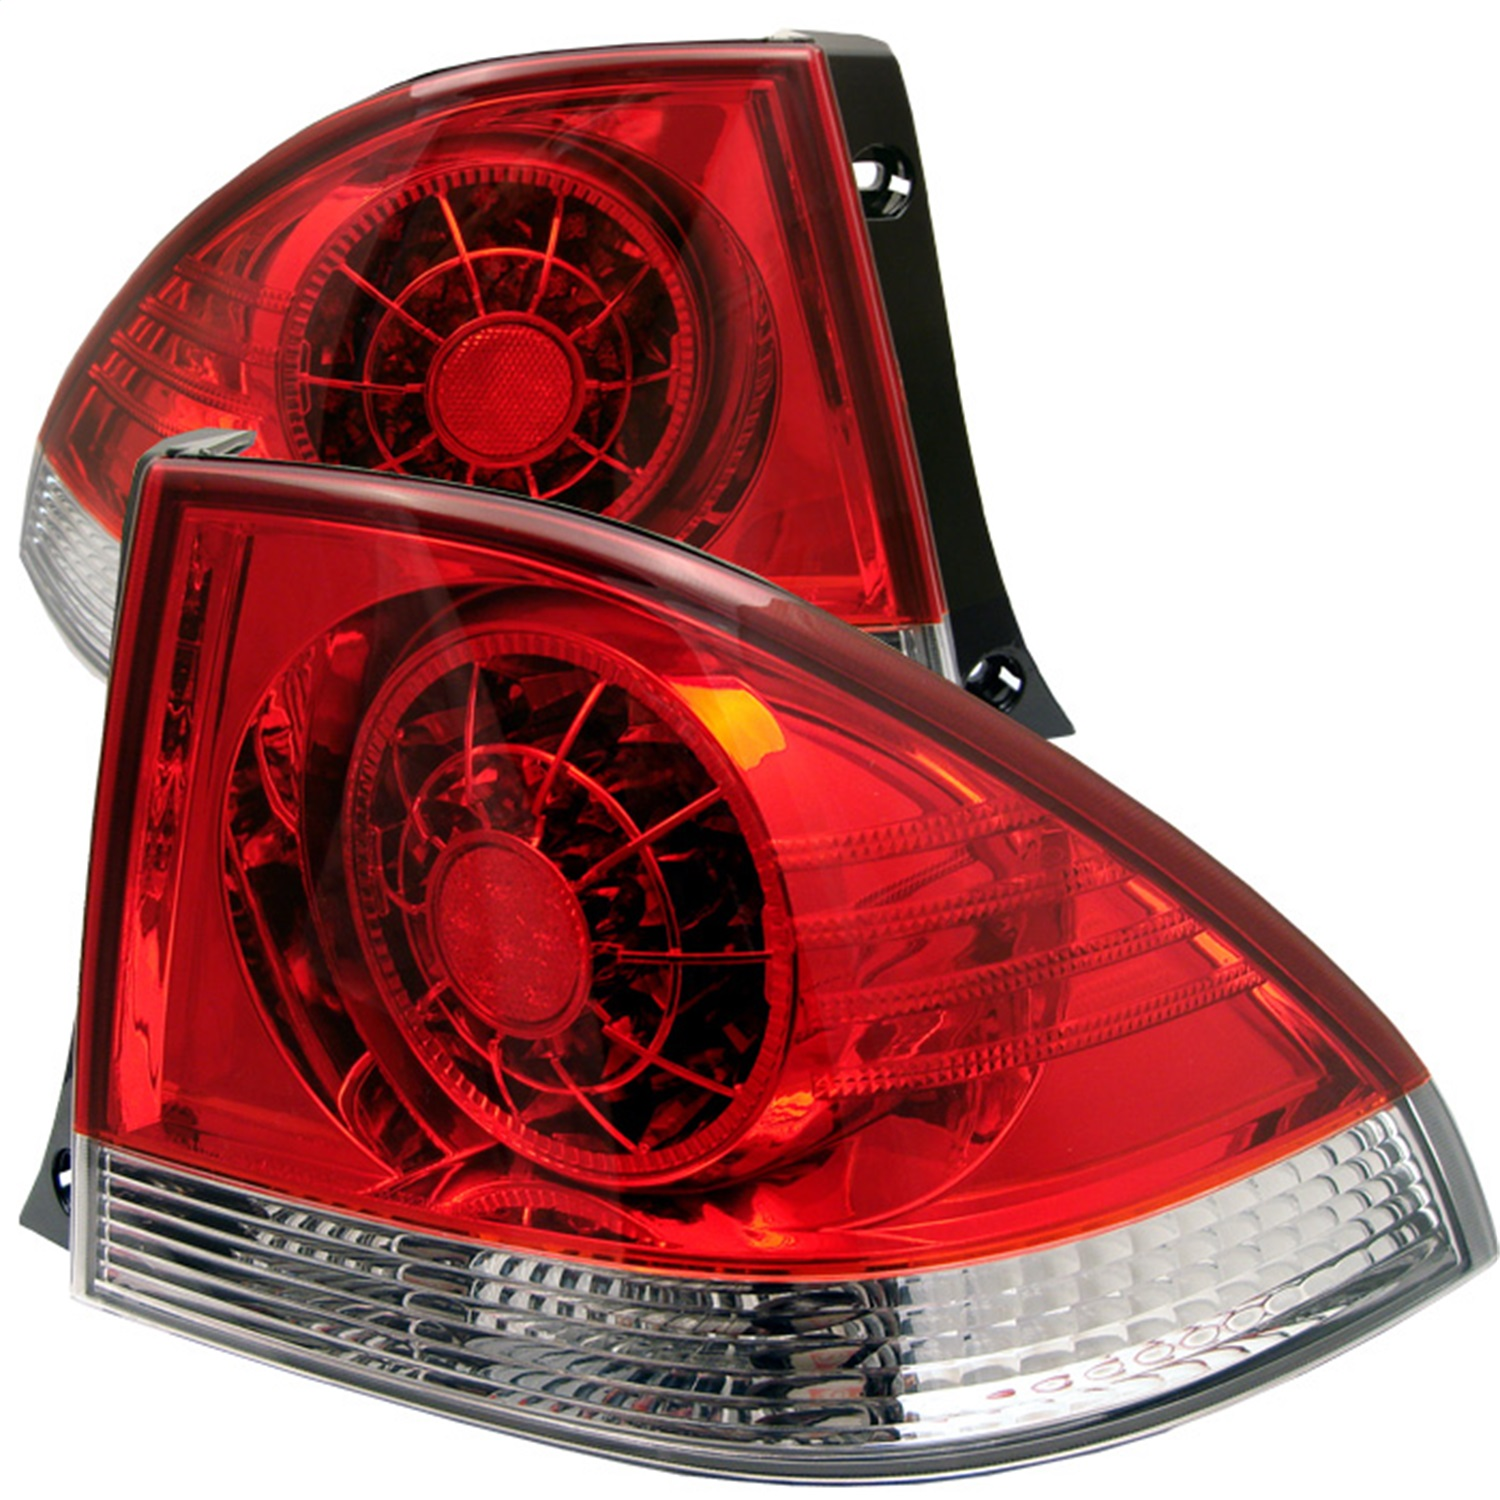 Spyder Auto 5005823 LED Tail Lights Fits 01-03 IS300